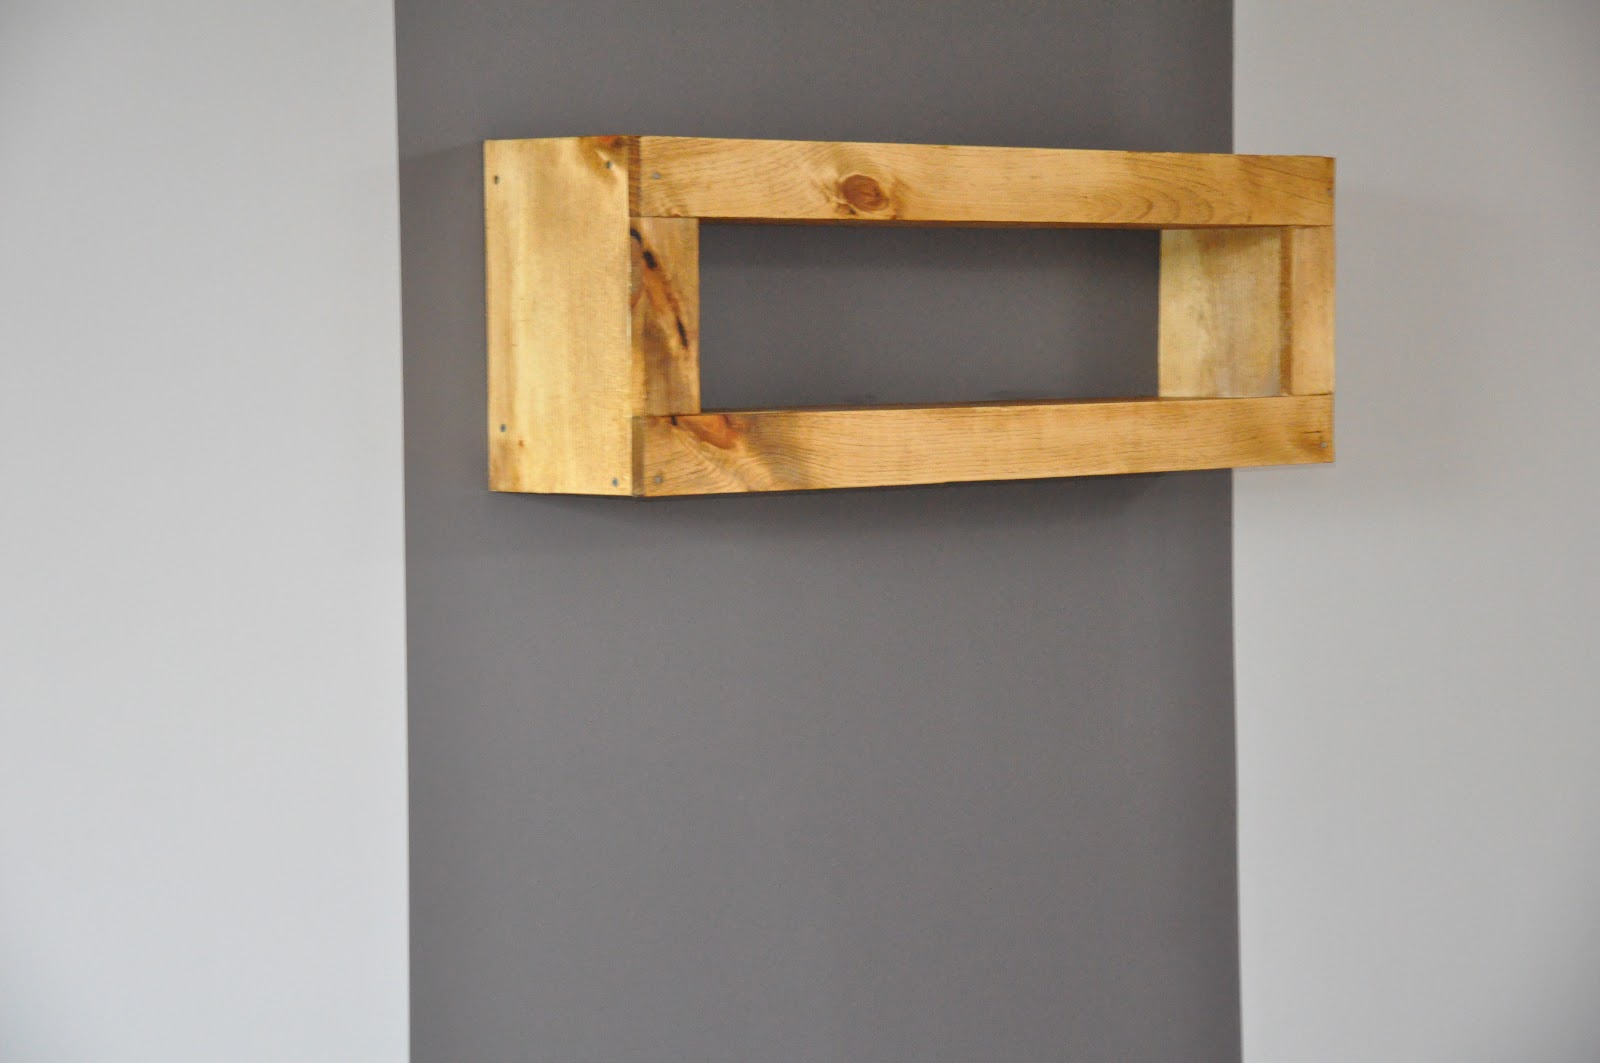 Etag re suspendue dans les airs by tipy tipydesign - Etagere suspendue design ...